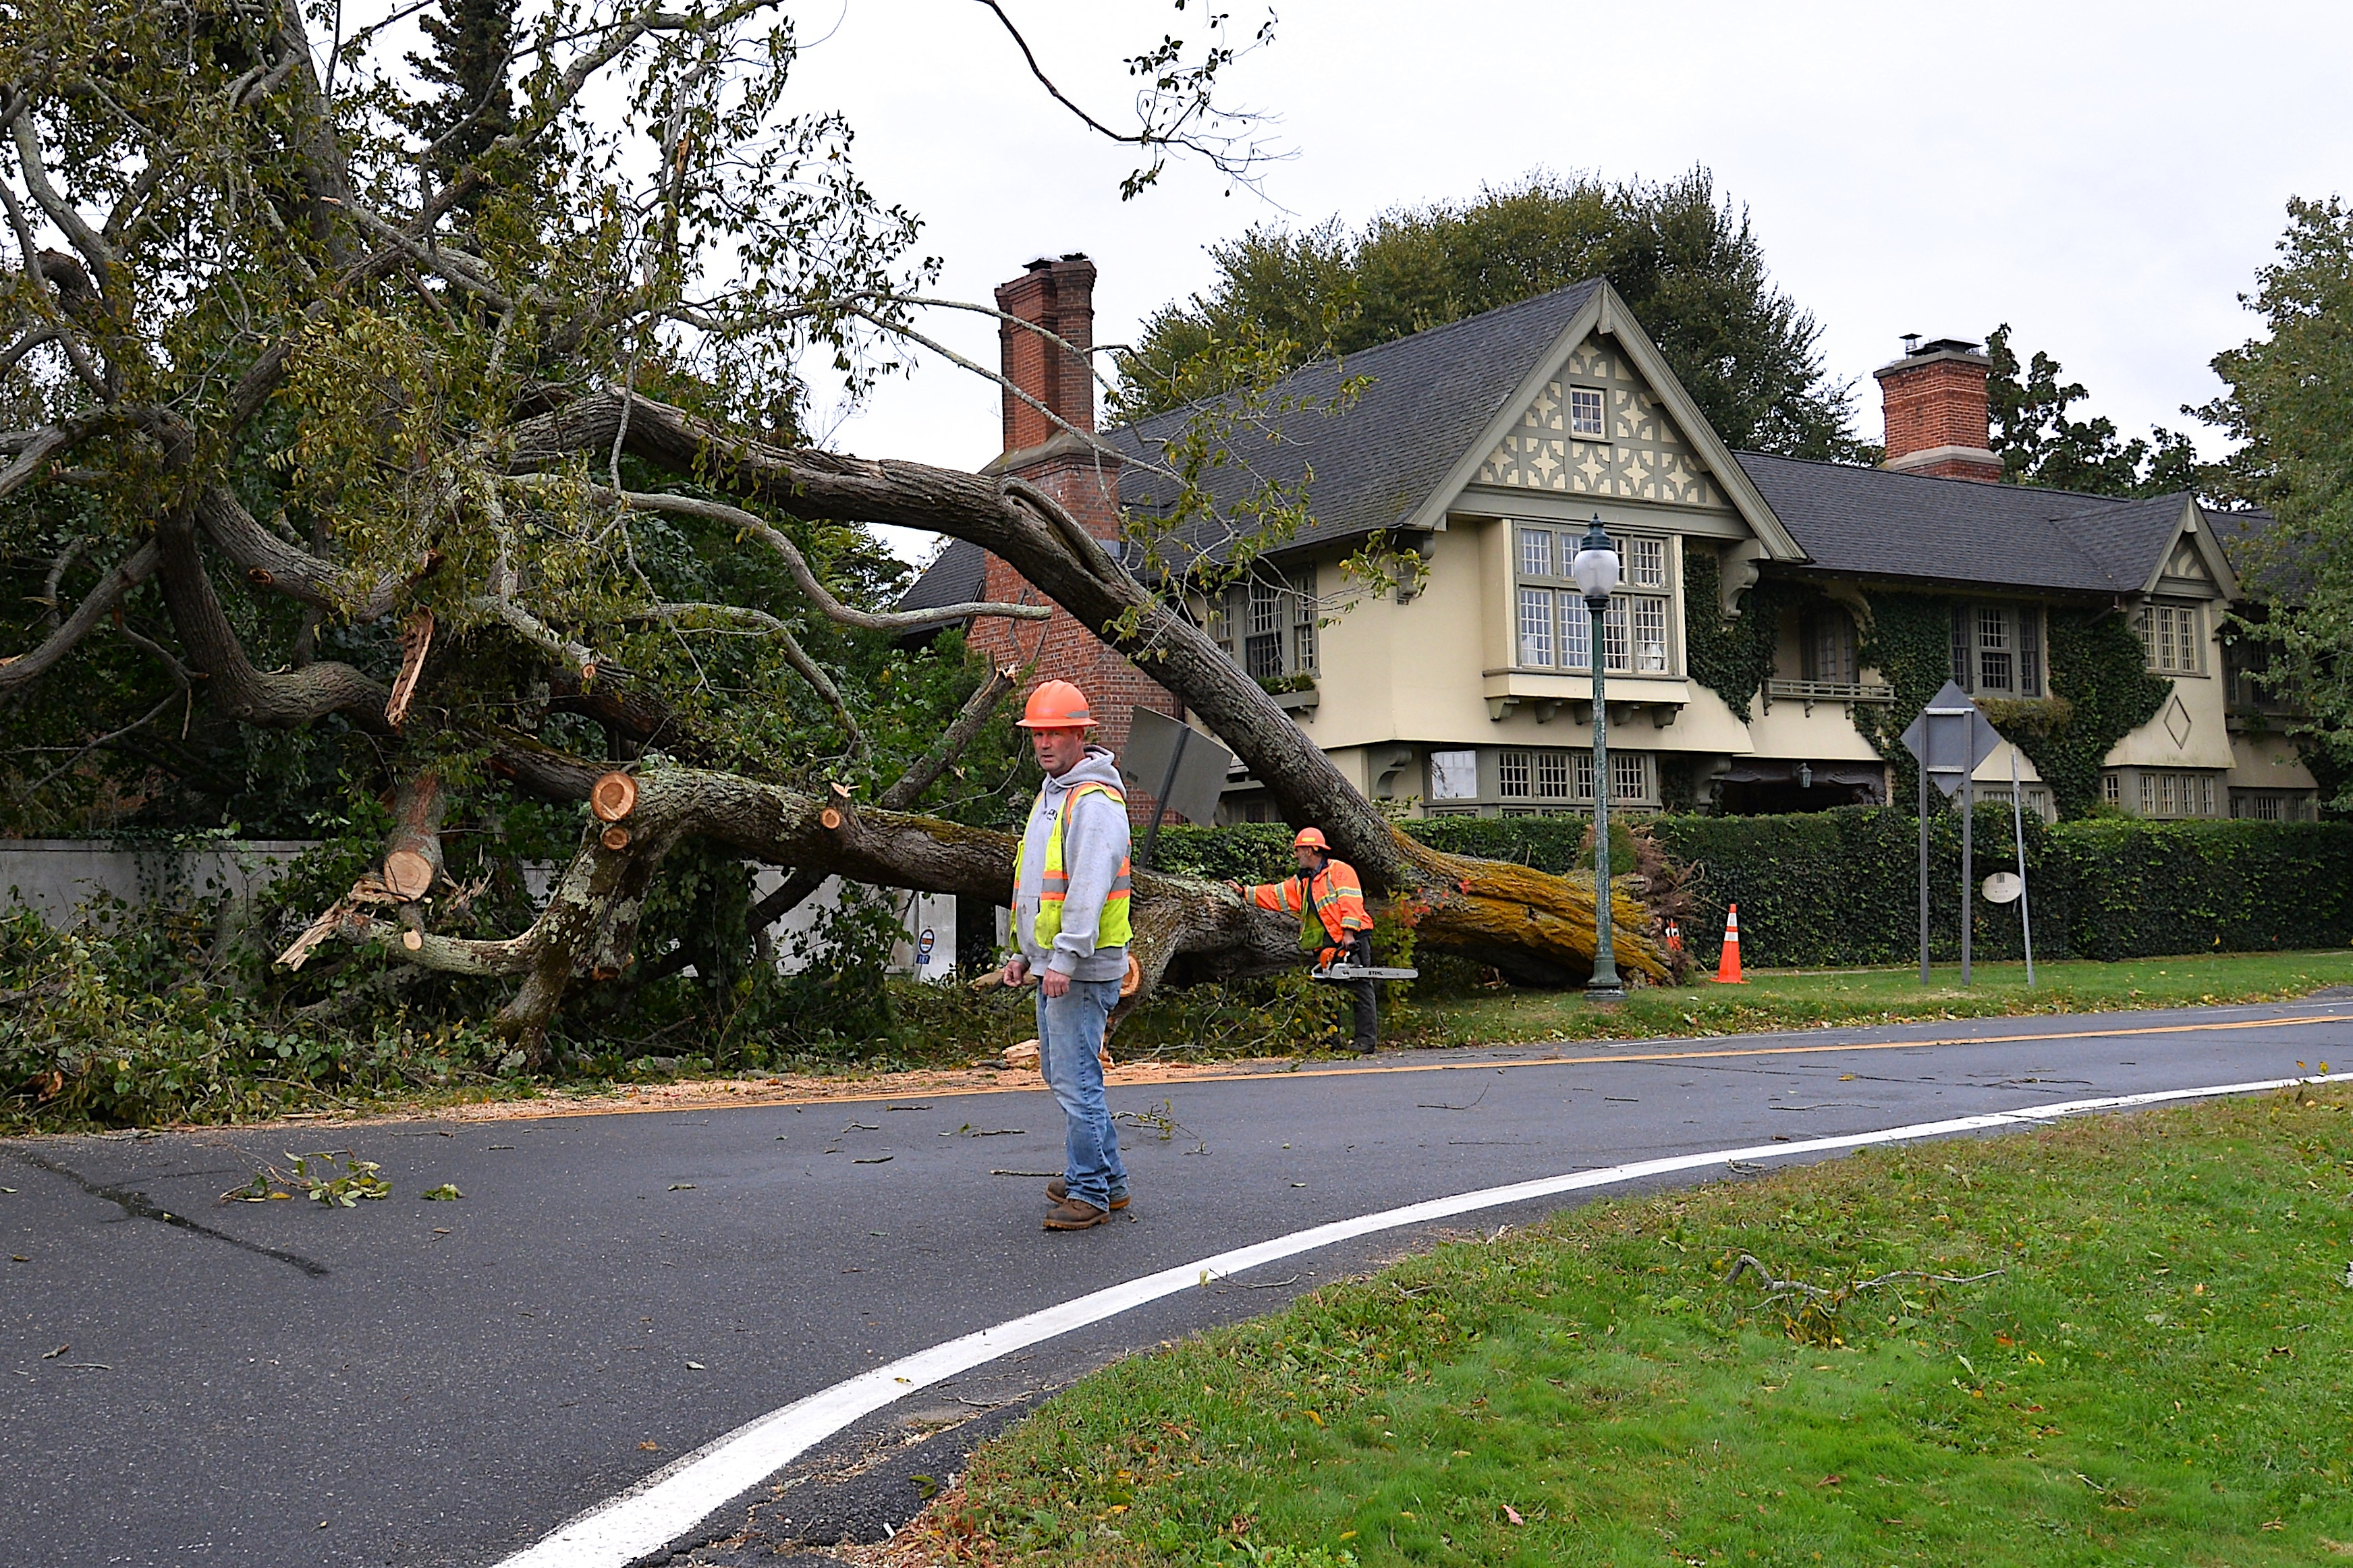 A large tree blew down at around 10 a.m. on Thursday on Main Street in East Hampton Village. A section of Main Street near Baker House 1650 was closed to traffic while New York State Department of Transportation crews worked in the rain and wind to cut up and remove the tree.  KYRIL BROMLEY